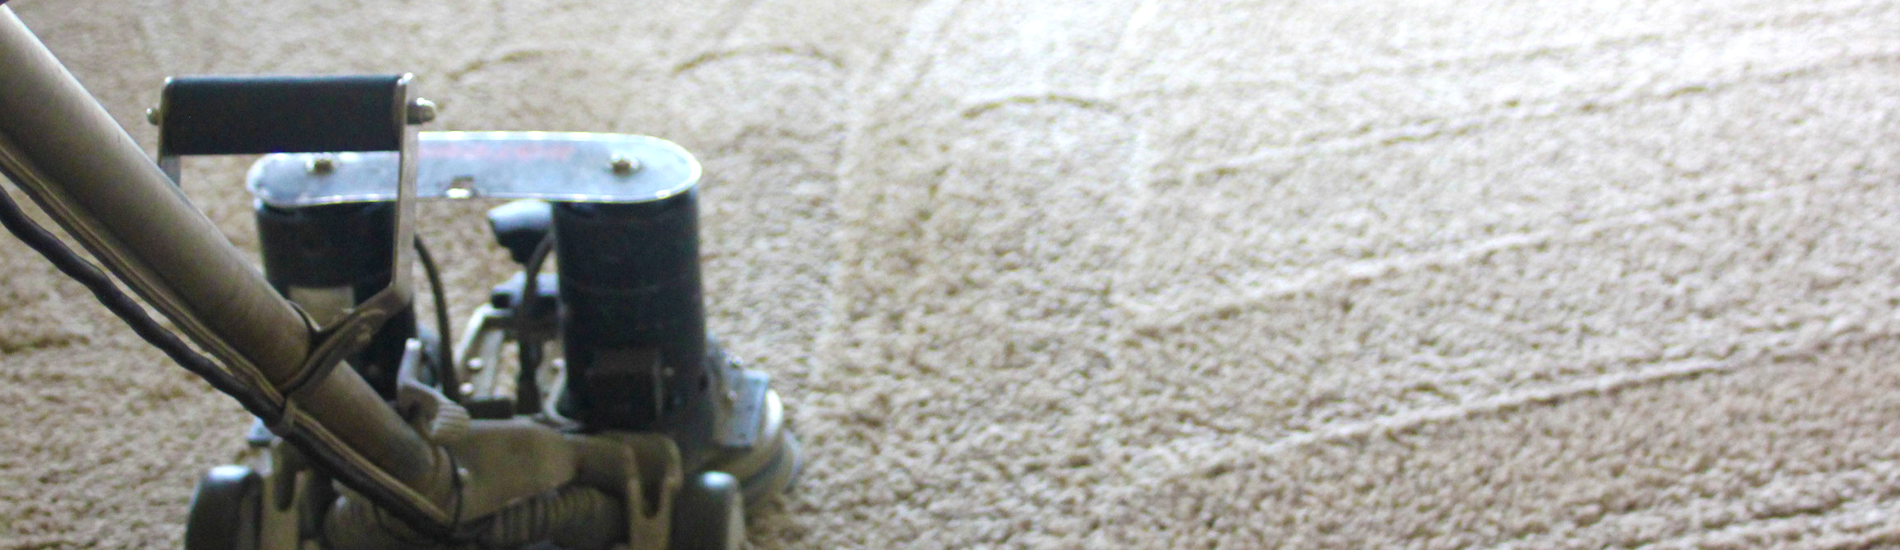 CARPET CLEANING & MORE